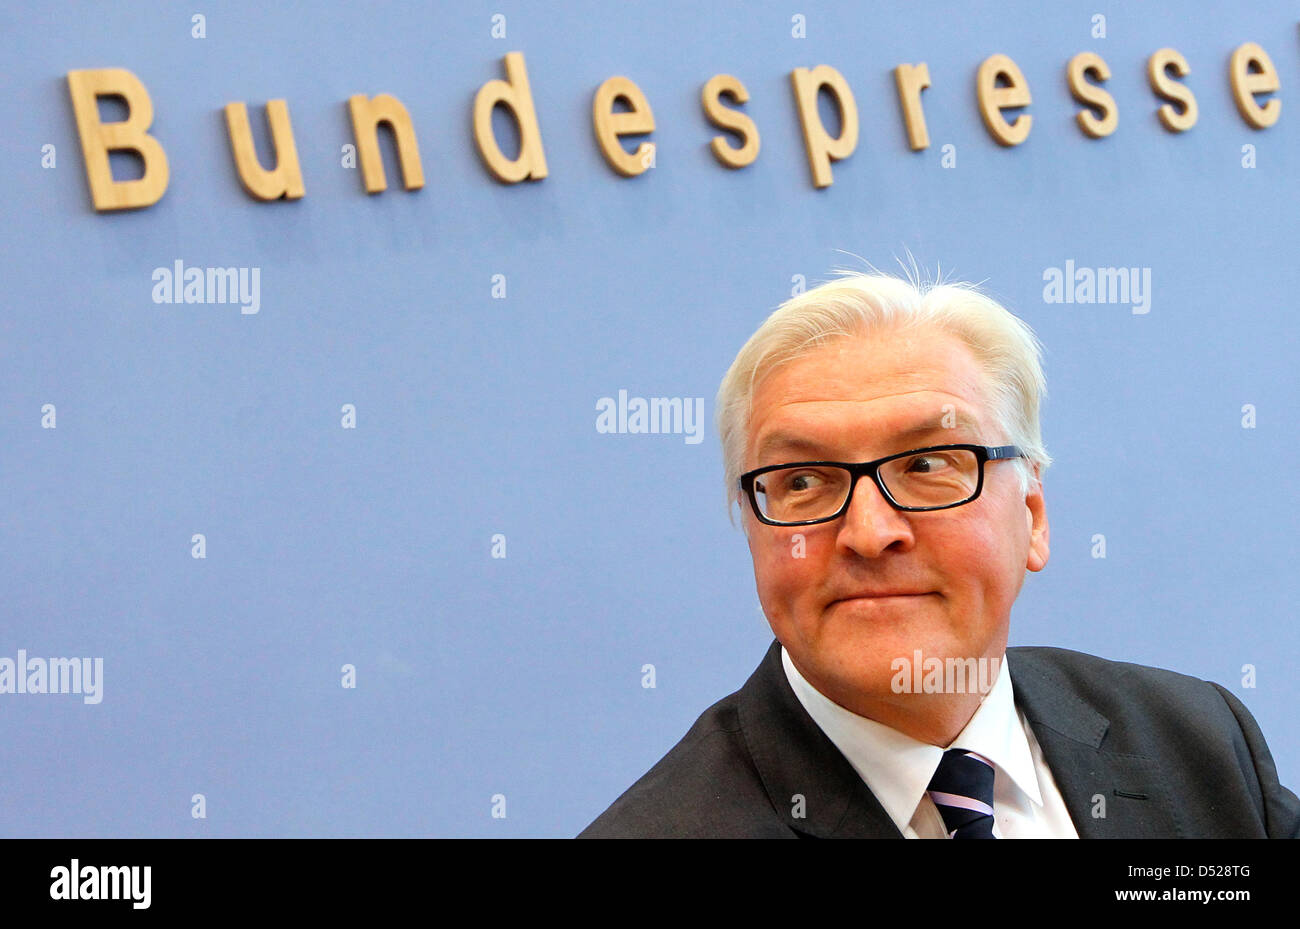 Chairman of Social Democrats (SPD)Bundestag faction Frank-Walter Steinmeier delivers a press conference on the opposition's impression of one year of Germany's ruling coalition in Berlin, Germany, 26 October 2010. Photo:WOLFGANGKUMM Stock Photo